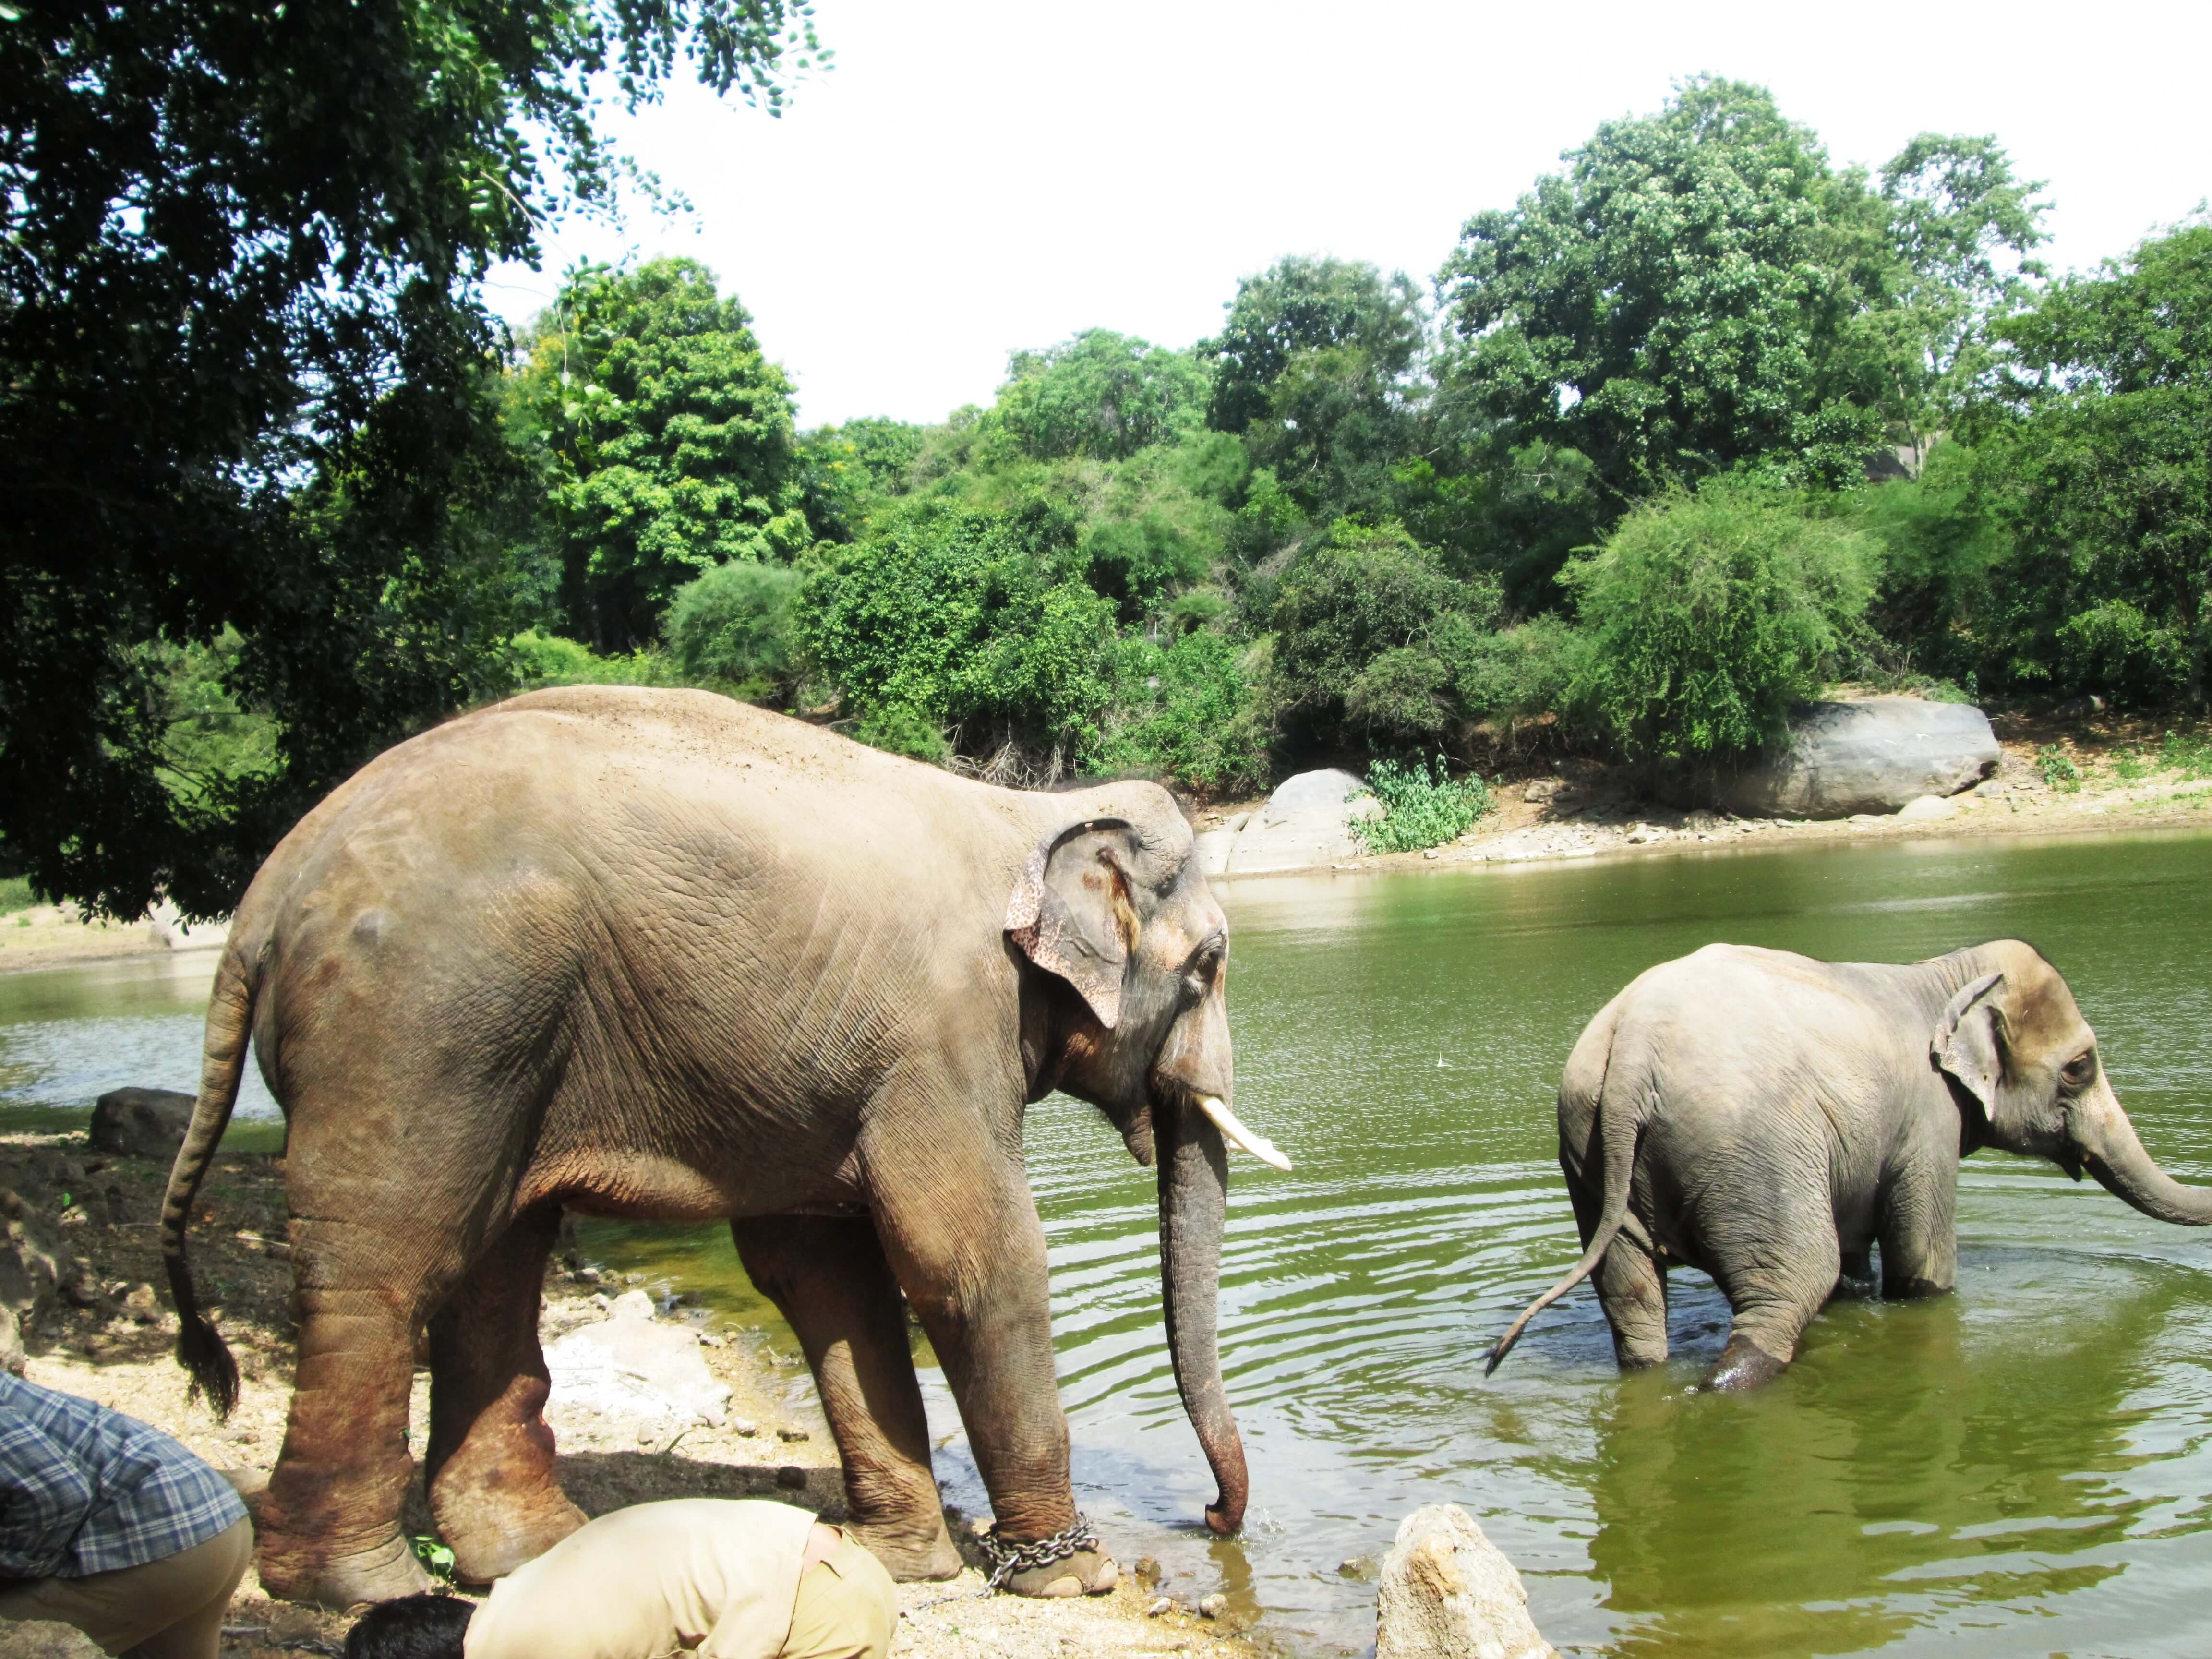 Here, Sunder is being readied to take a dip in the pond. Because he endured violent beatings and solitary confinement for much of his life, [https://www.petaindia.com/blog/caught-video-elephant-sunder-beaten/] his new caretakers are still handling him cautiously and keeping him lightly restrained but permitting him to move around. Abused elephants commonly hurt or kill people out of distrust, [http://indiatoday.intoday.in/story/elephant-went-fury-and-killing-many-during-kerela-festival2007/1/156056.html] so the caretakers are still a little apprehensive.